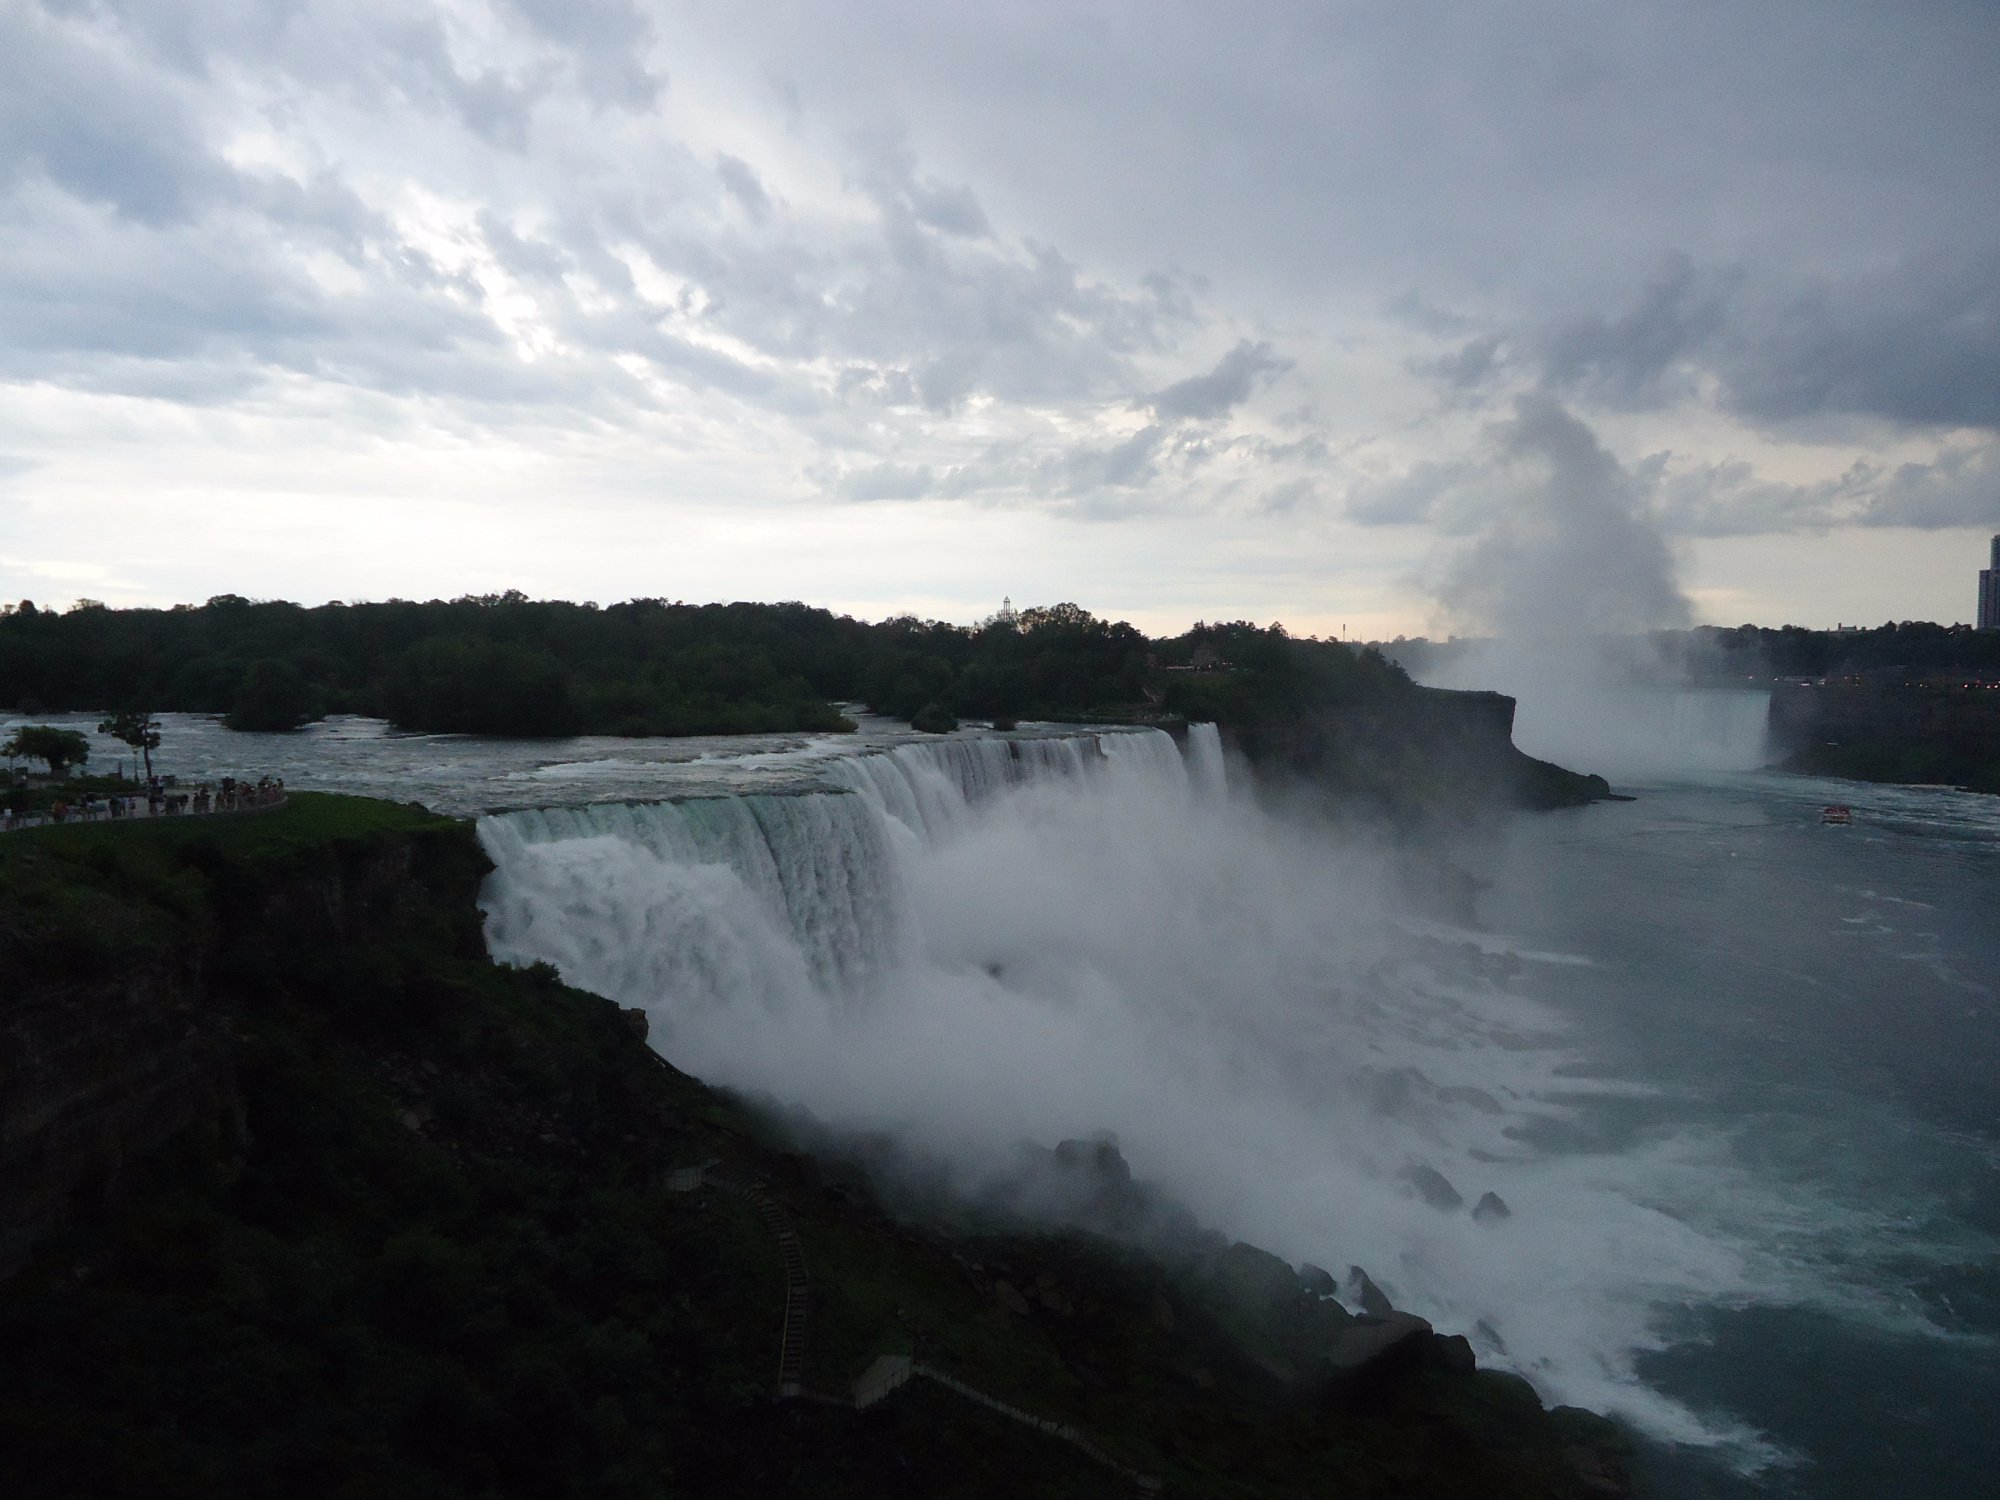 Mist in the far distance being created from the HORSESHOE FALLS.